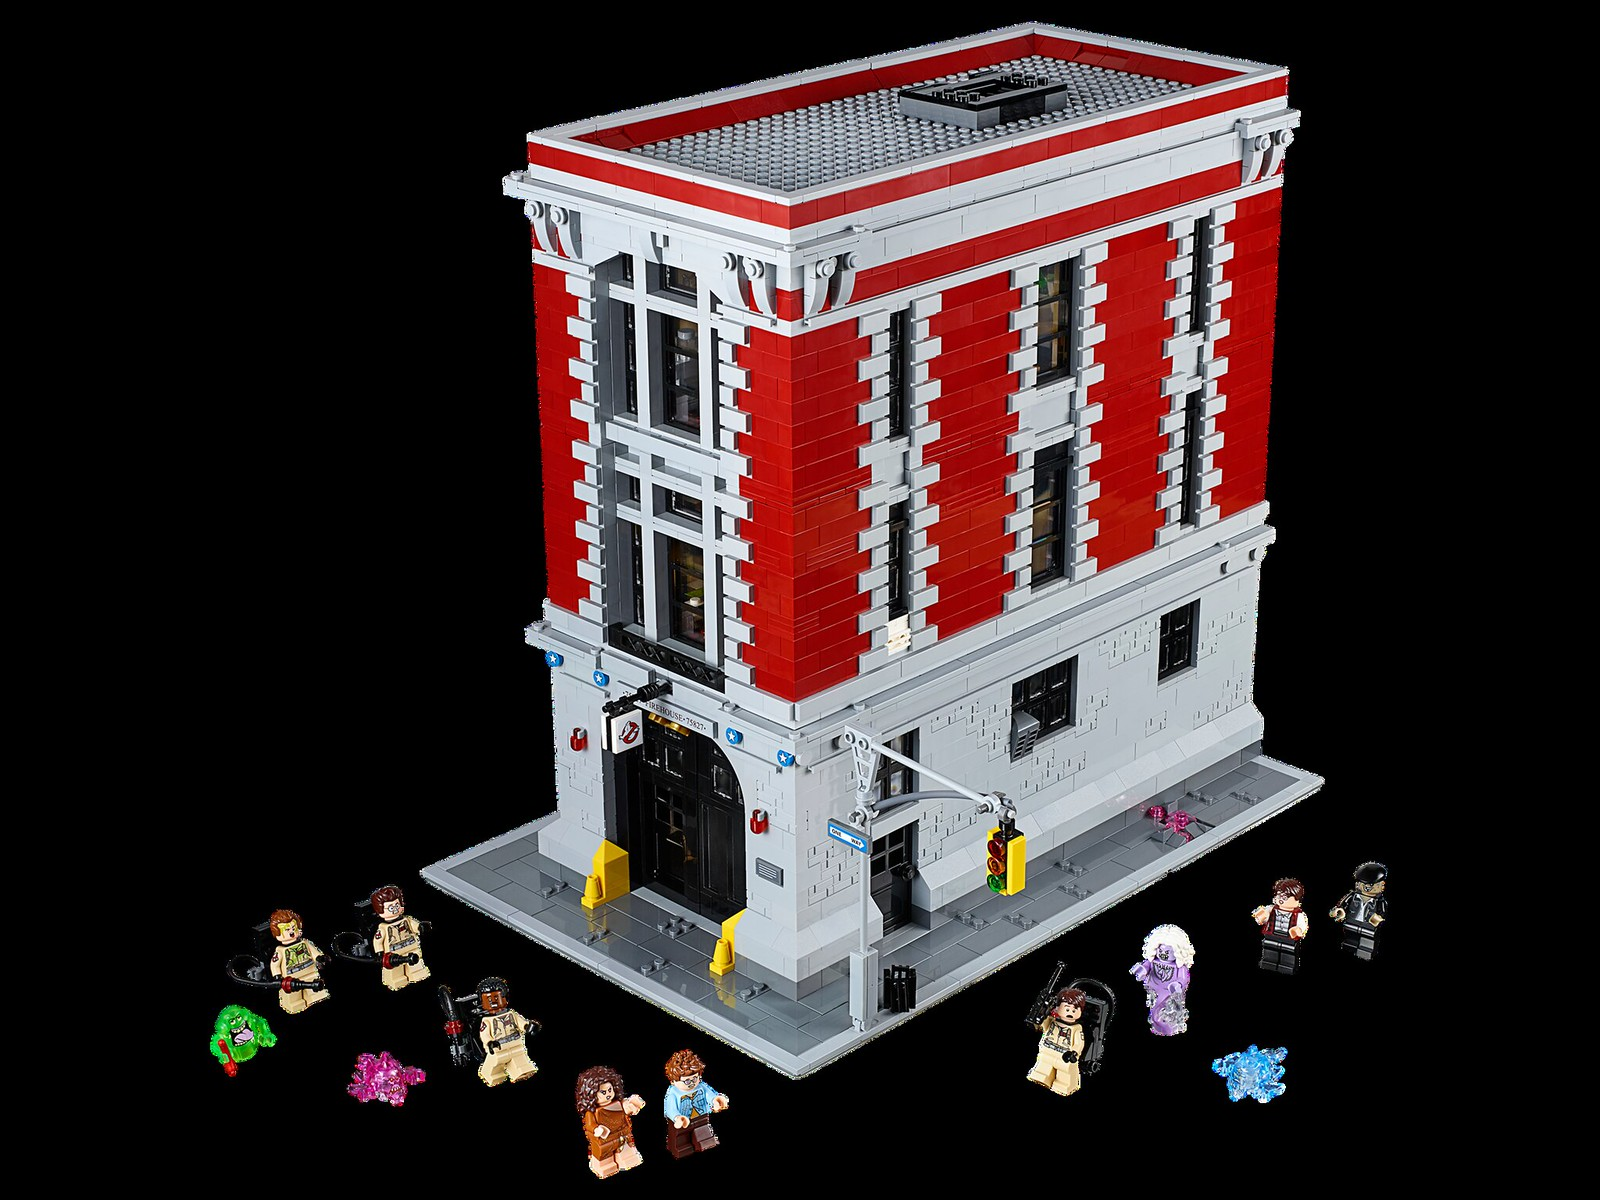 [LEGO] SOS Fantômes - Ghostbusters - Page 4 21902577924_bfc735ae67_h